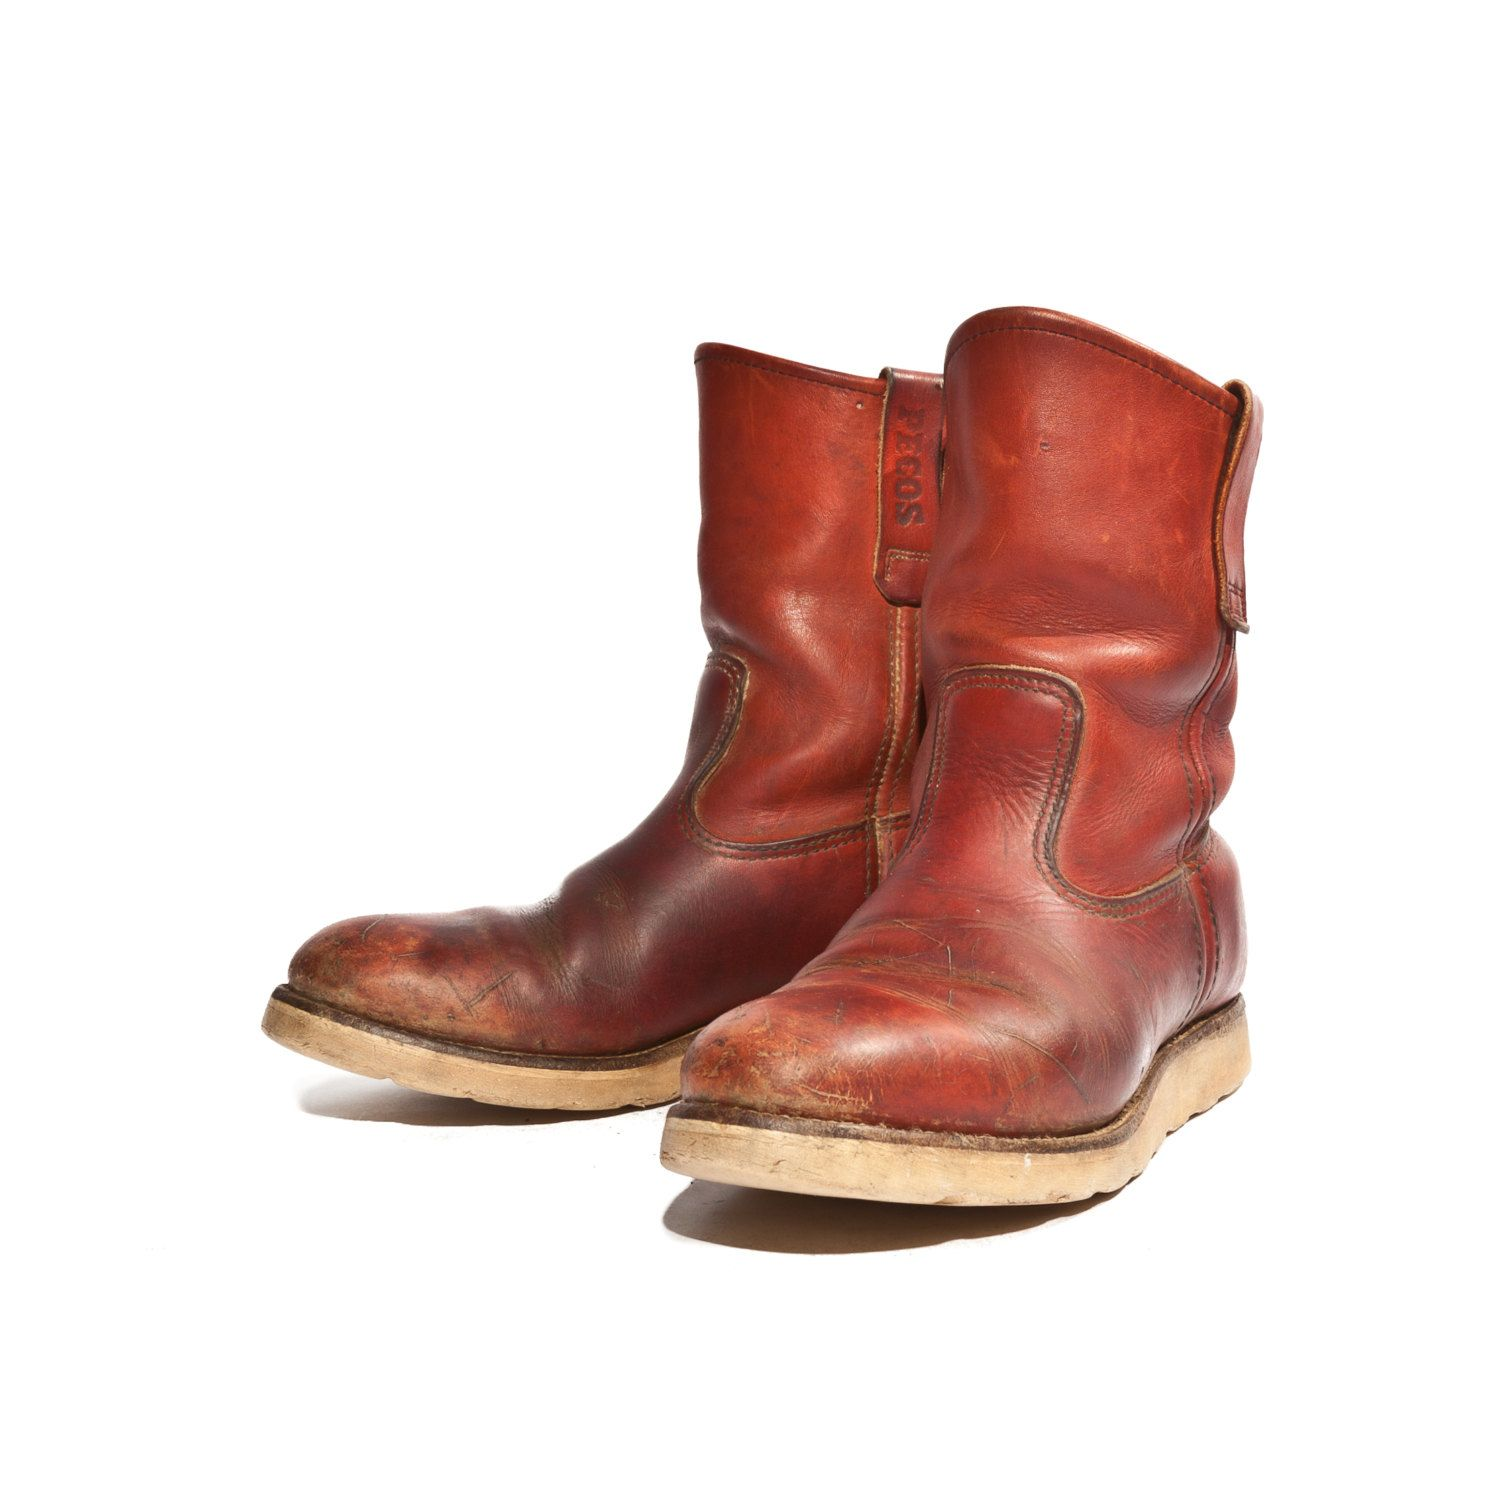 Vintage Red Wing Irish Setter Pecos Boots with Crepe Soles.